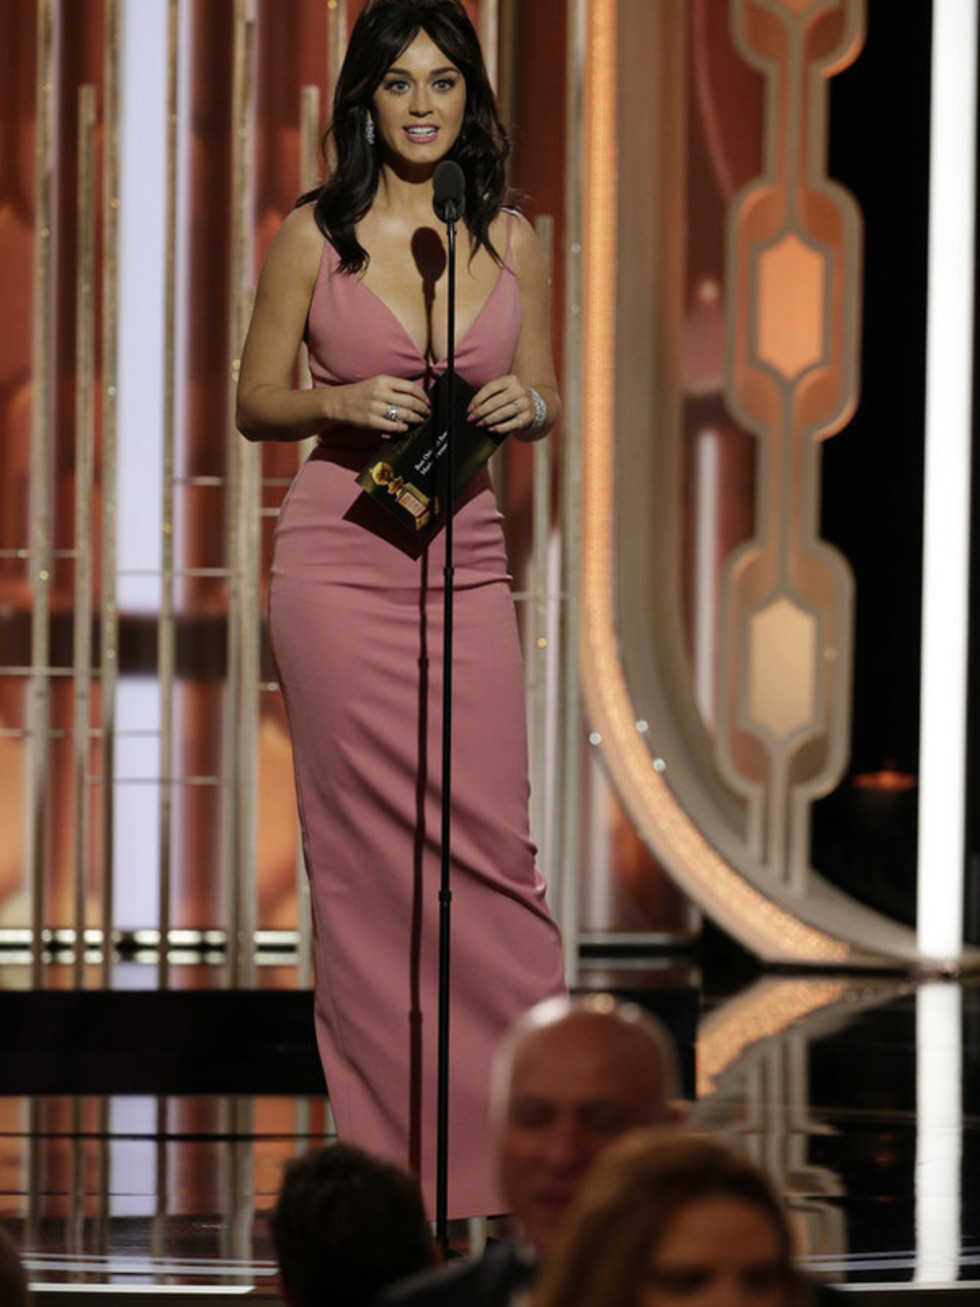 Katy Perry at Golden Globe Awards